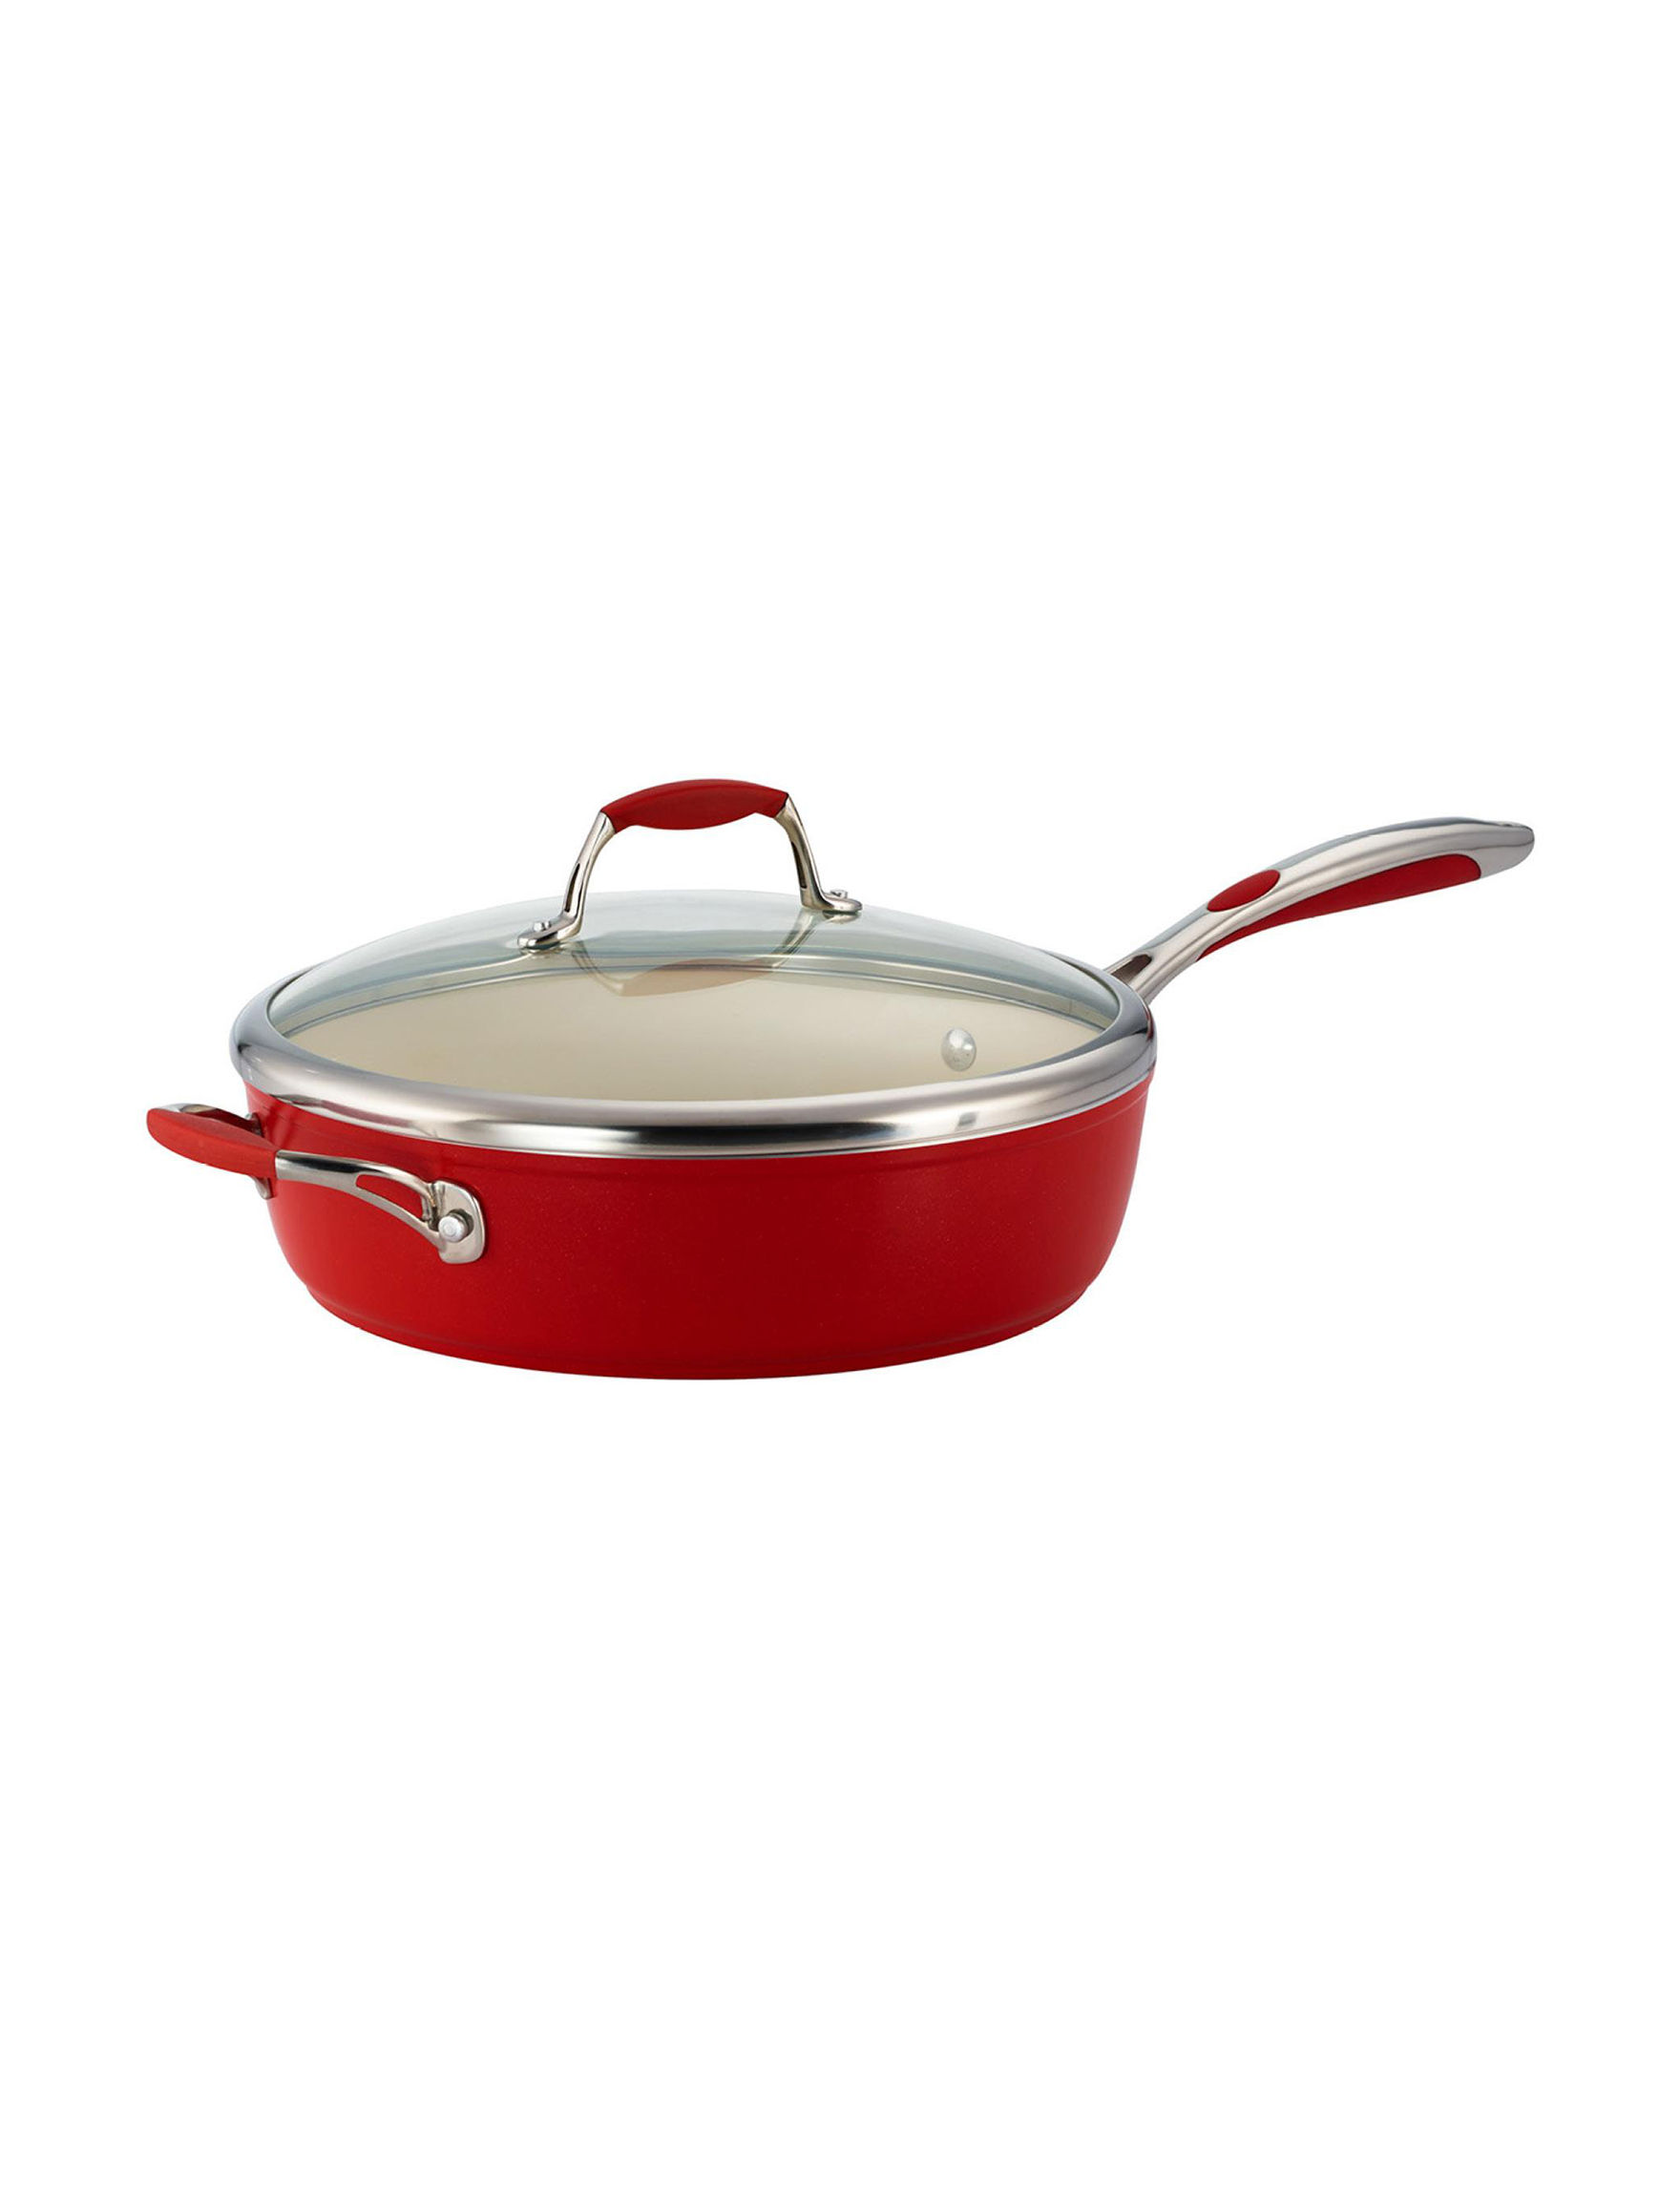 Tramontina Red Frying Pans & Skillets Cookware